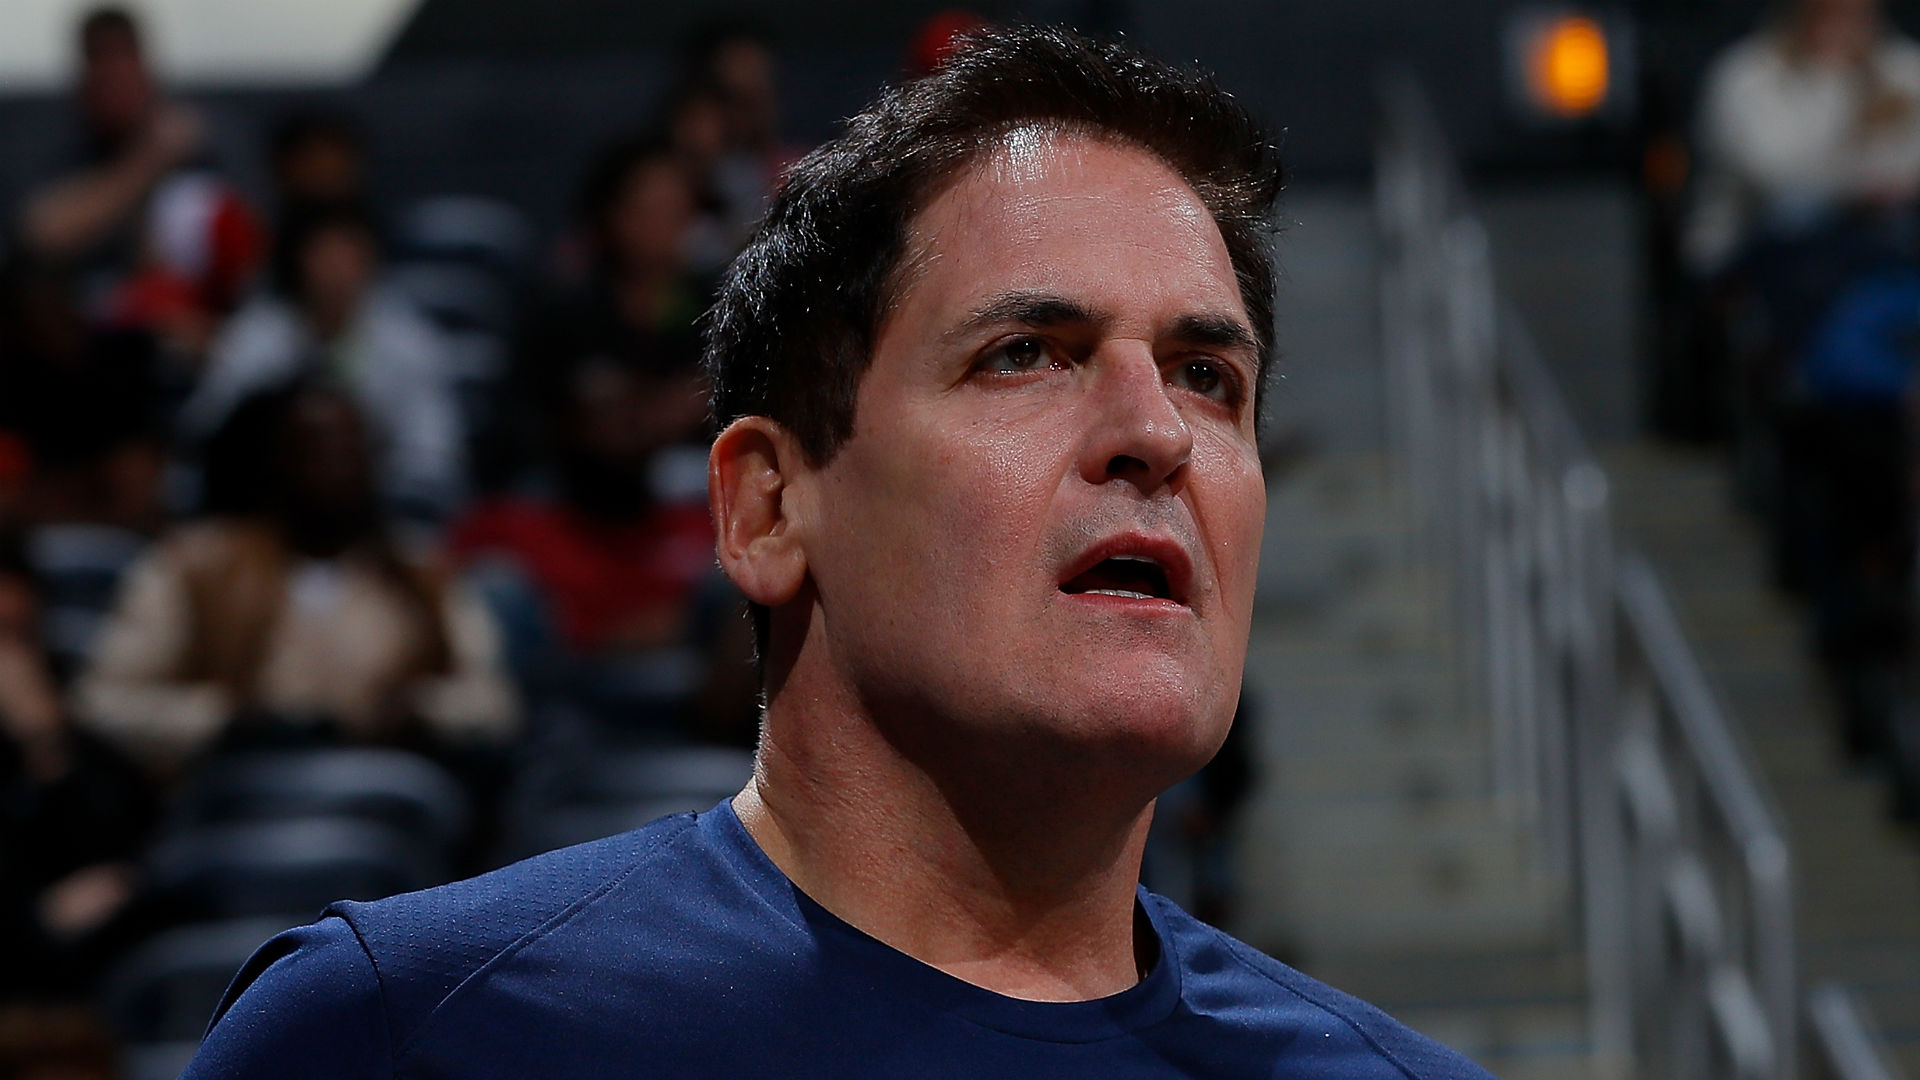 Mavericks owner Mark Cuban hopes NBA players are allowed to kneel during anthem 1